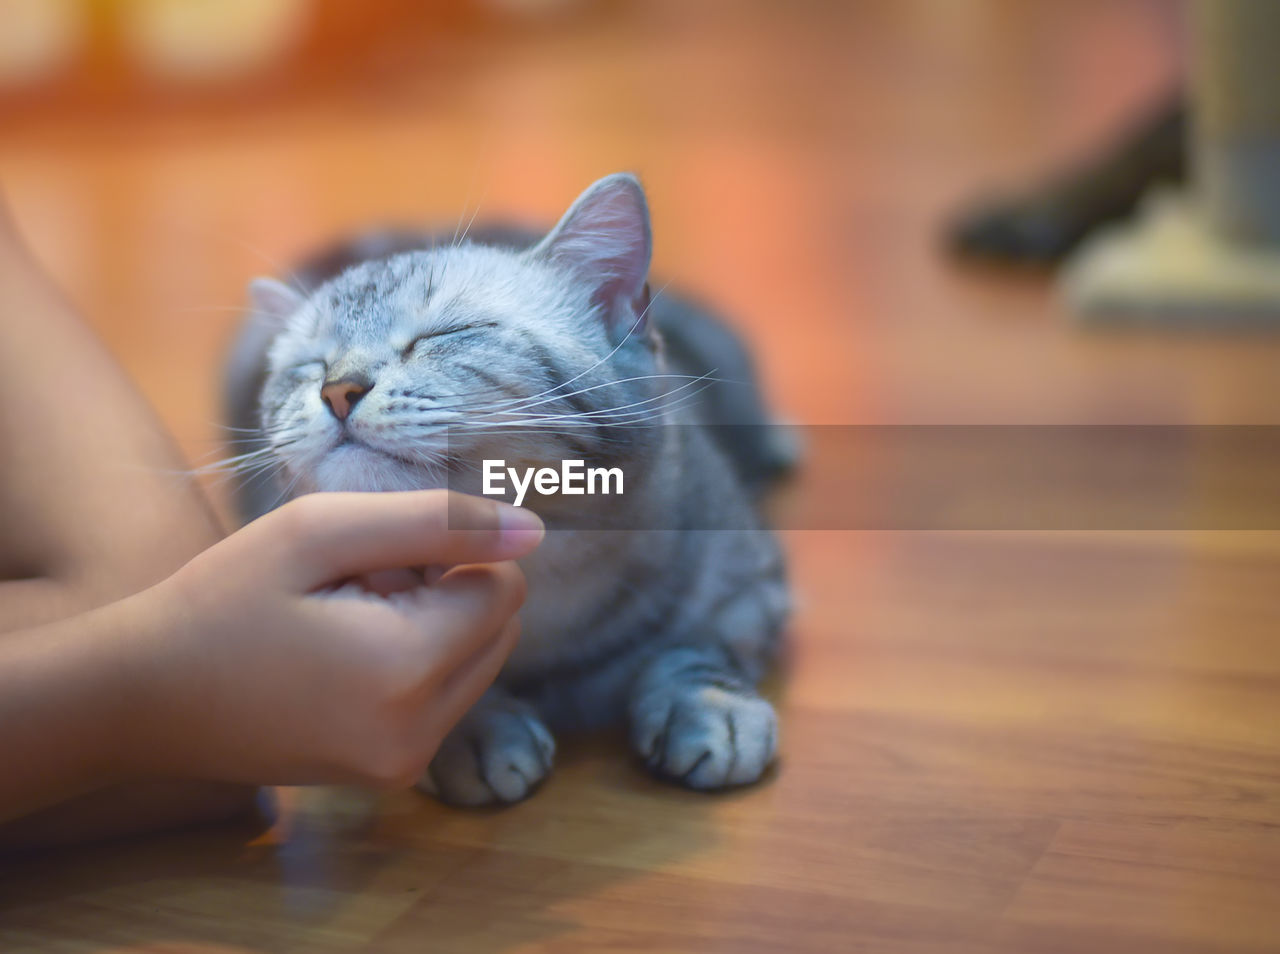 Cropped Hands Petting Kitten On Hardwood Floor